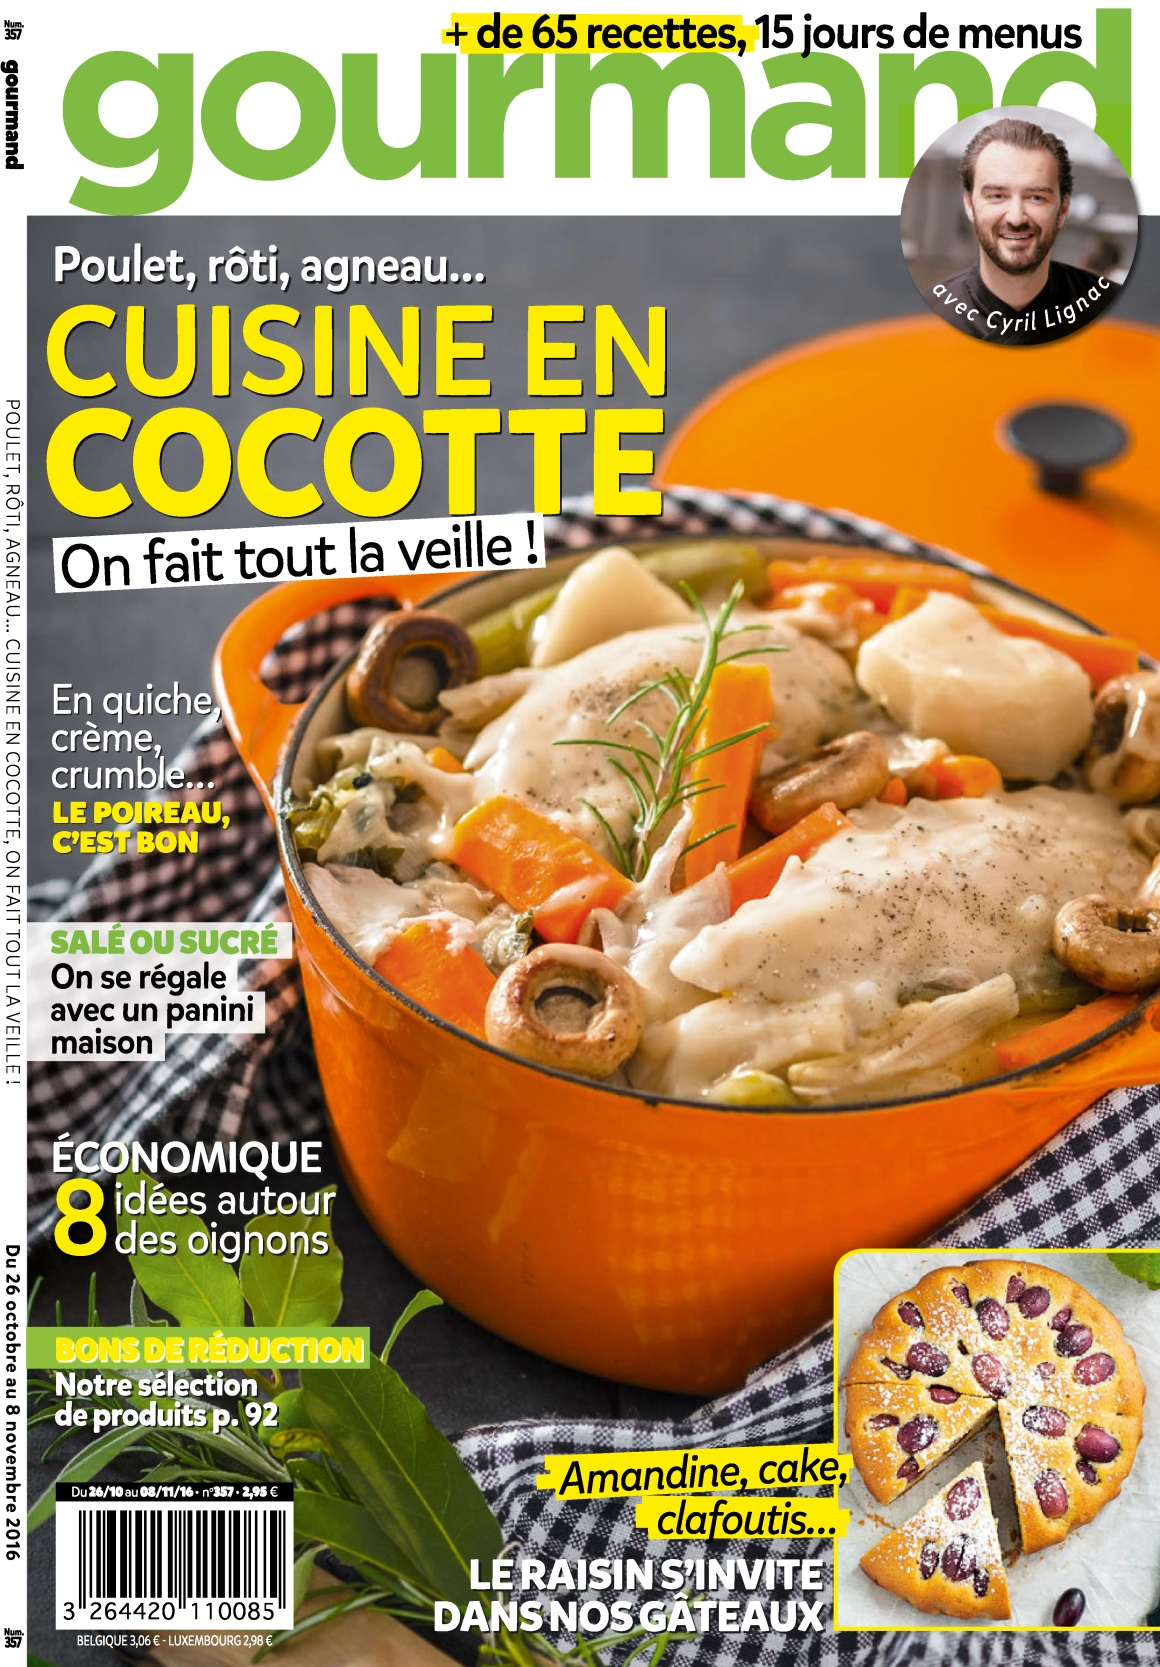 Gourmand 357 - 26 Octobre 08 Novembre 2016